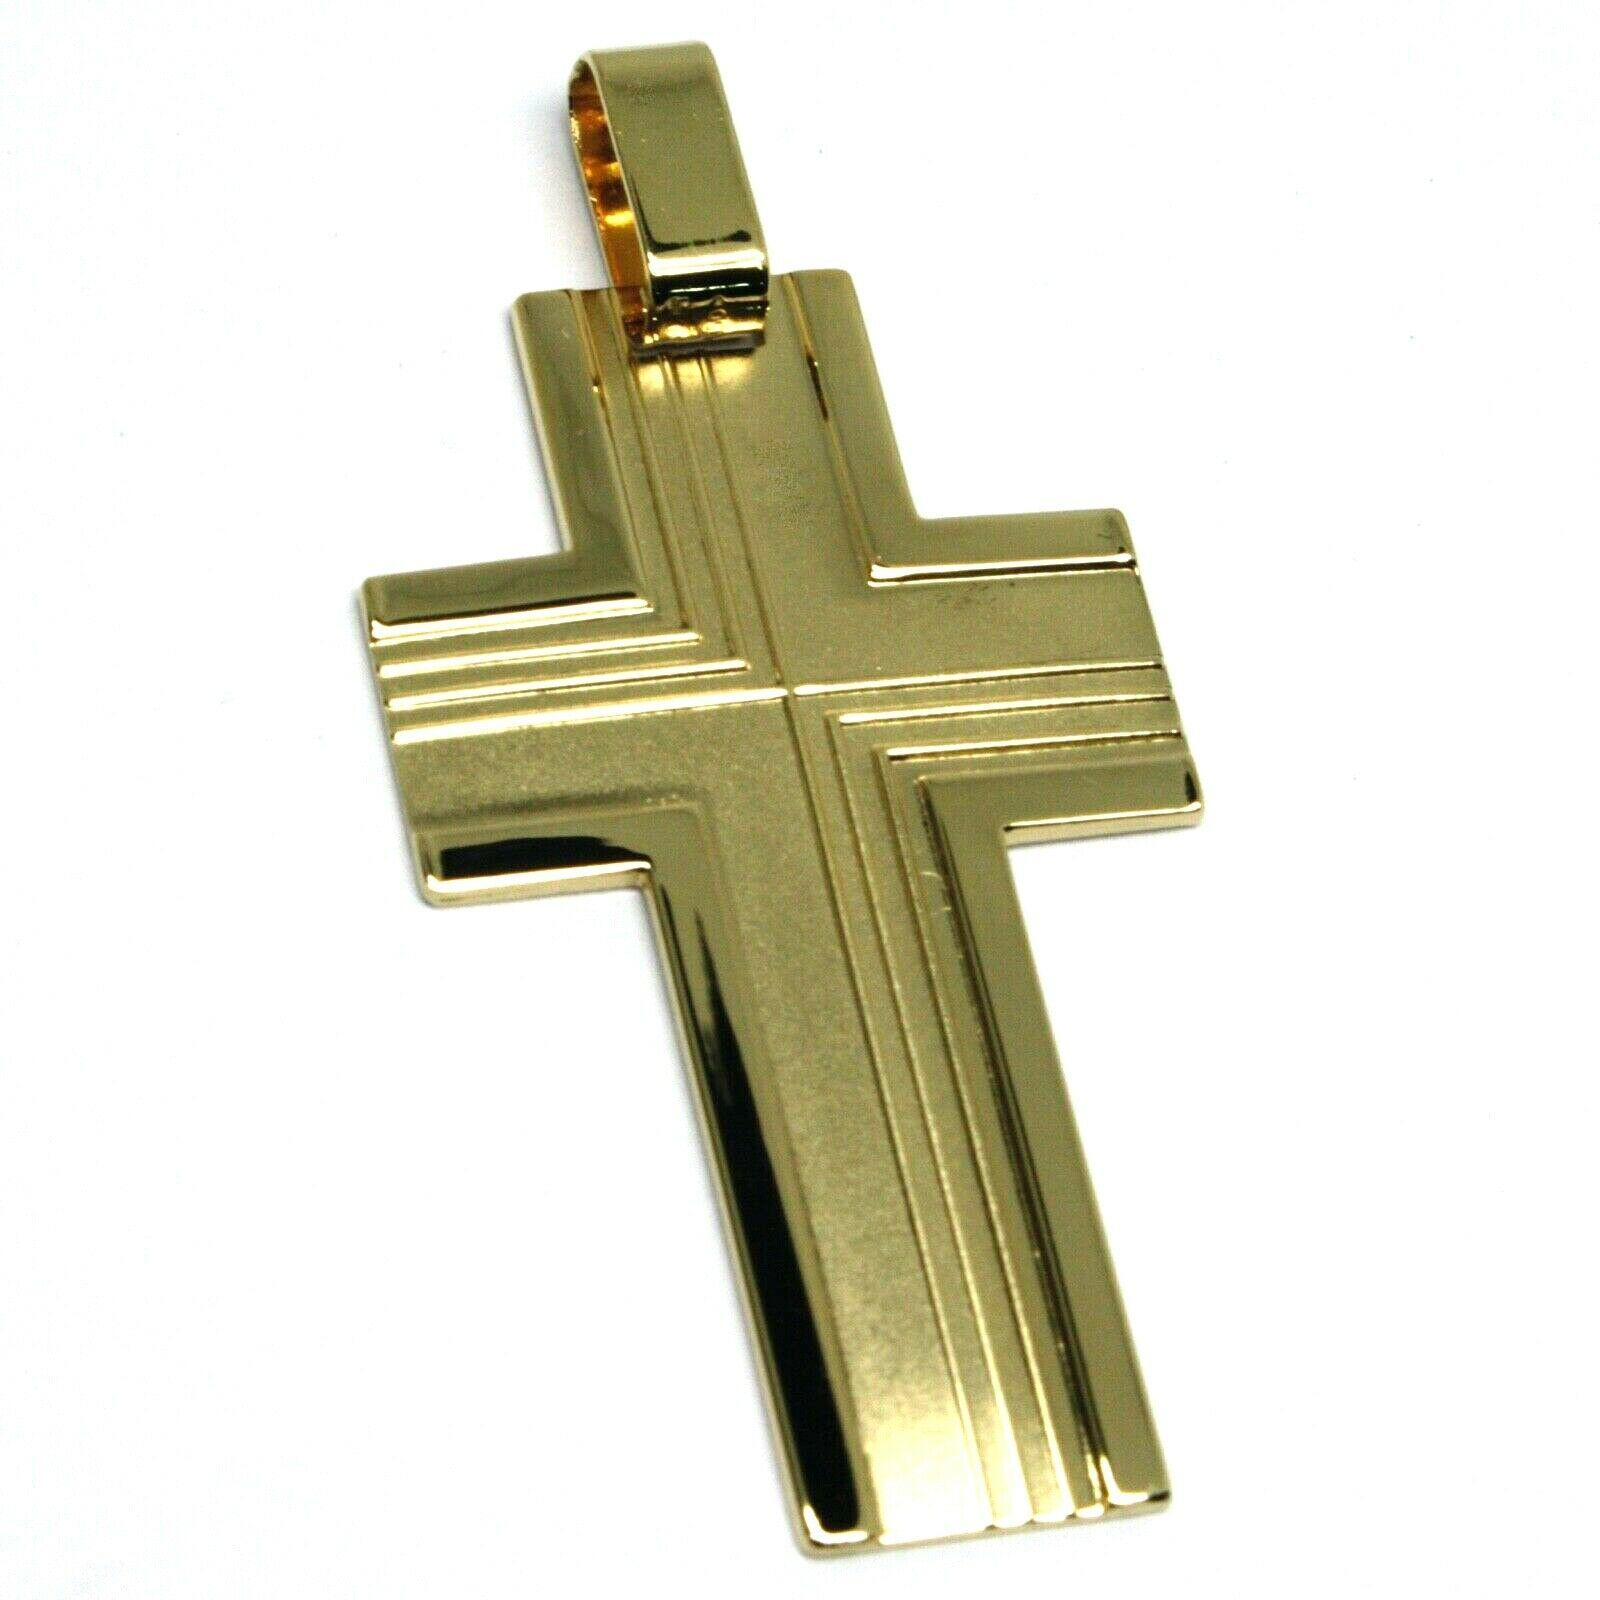 SOLID 18K YELLOW GOLD BIG 42mm FLAT CROSS, WORKED SATIN & SMOOTH MADE IN ITALY